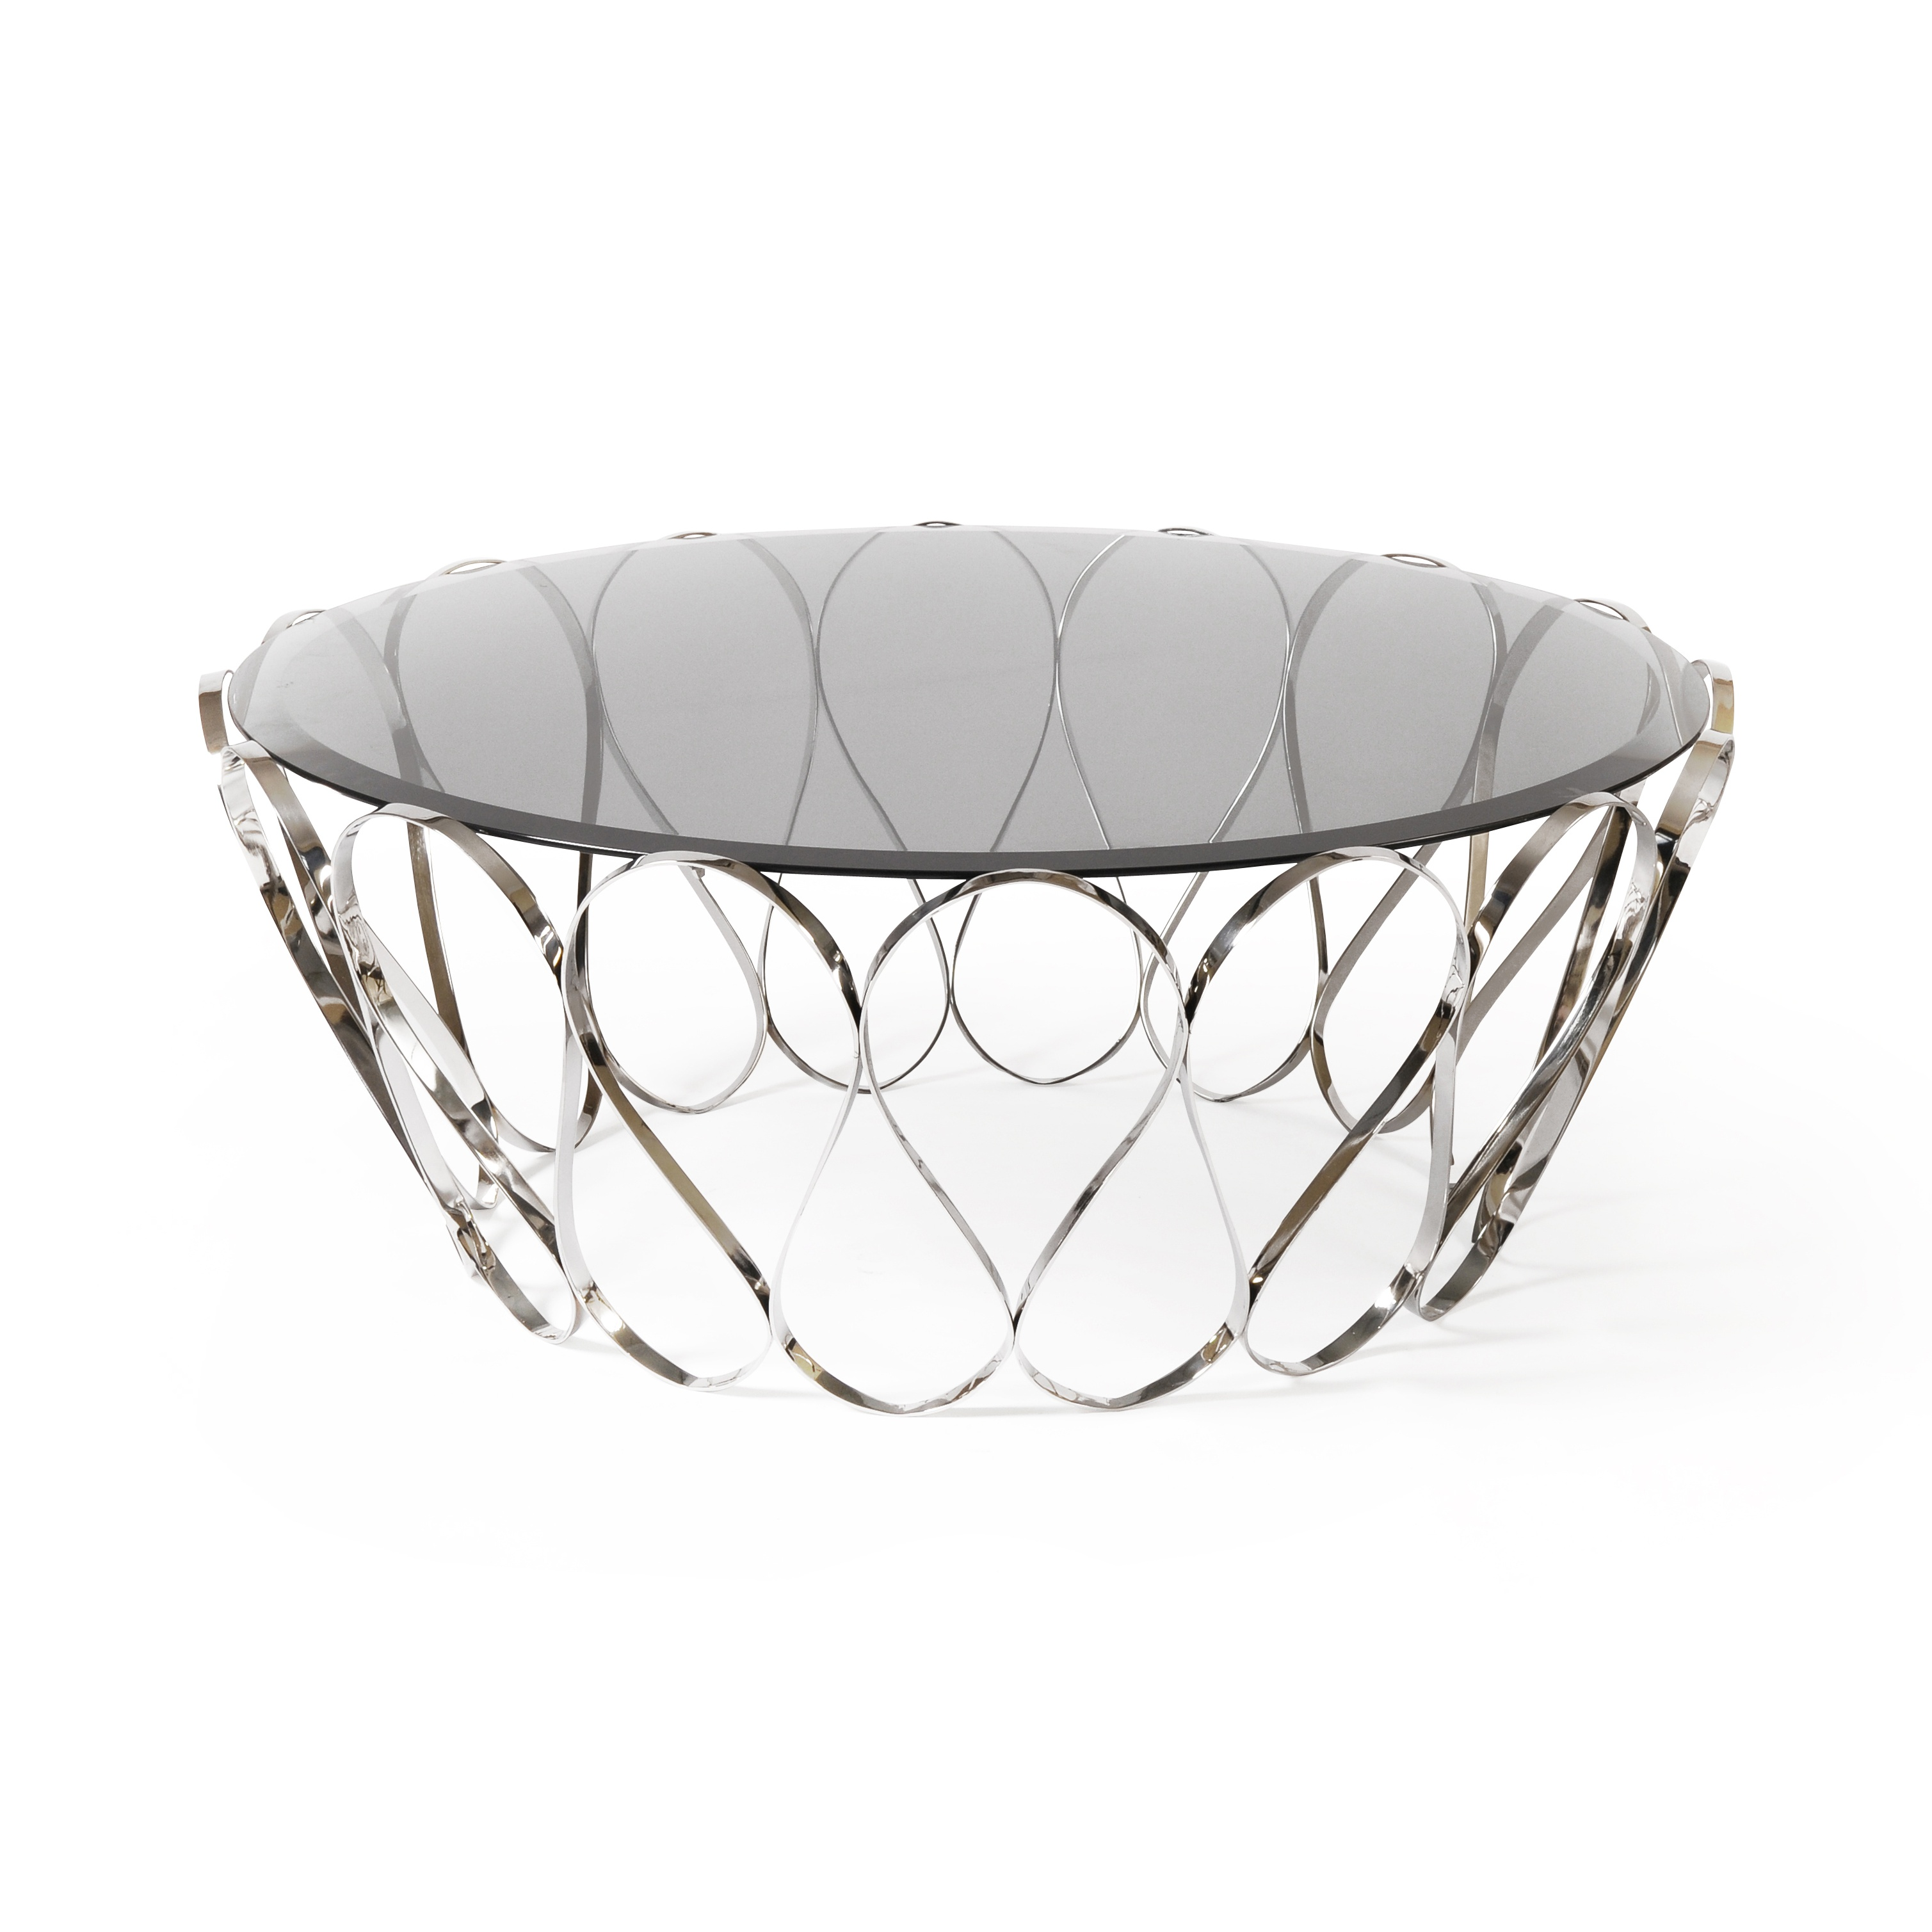 Aquarius Glass Coffee Table Stainless Steel Swanky Interiors